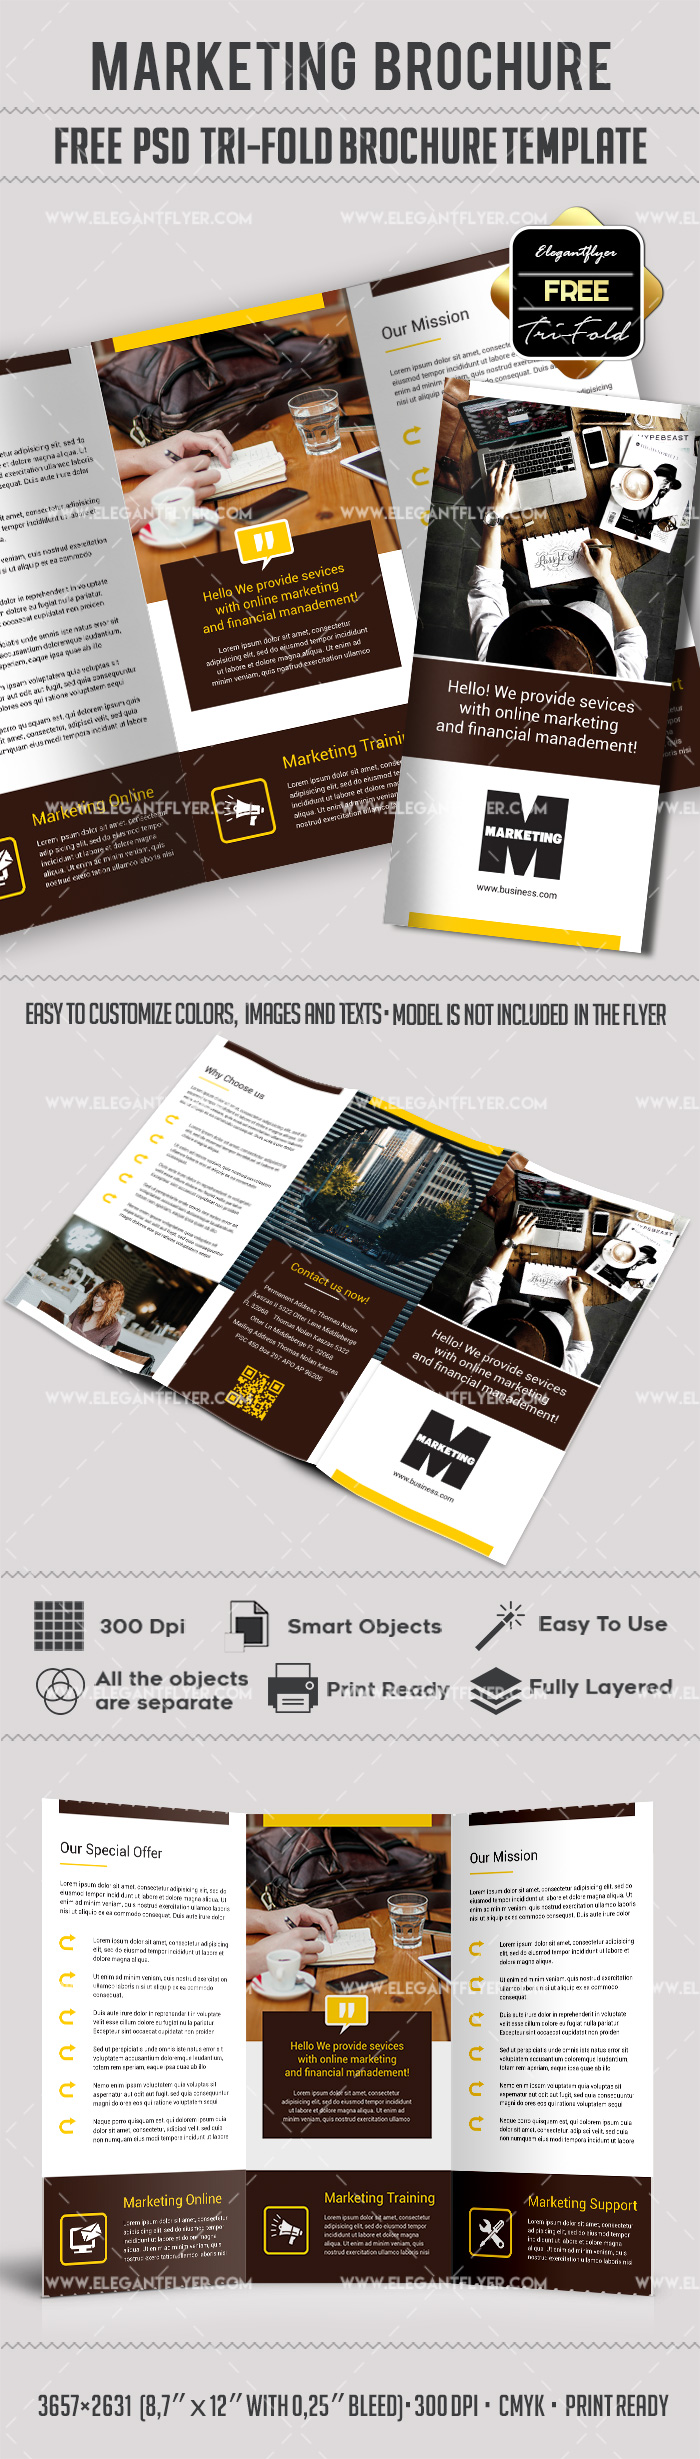 Marketing free tri fold psd brochure template by for Free template for brochure tri fold